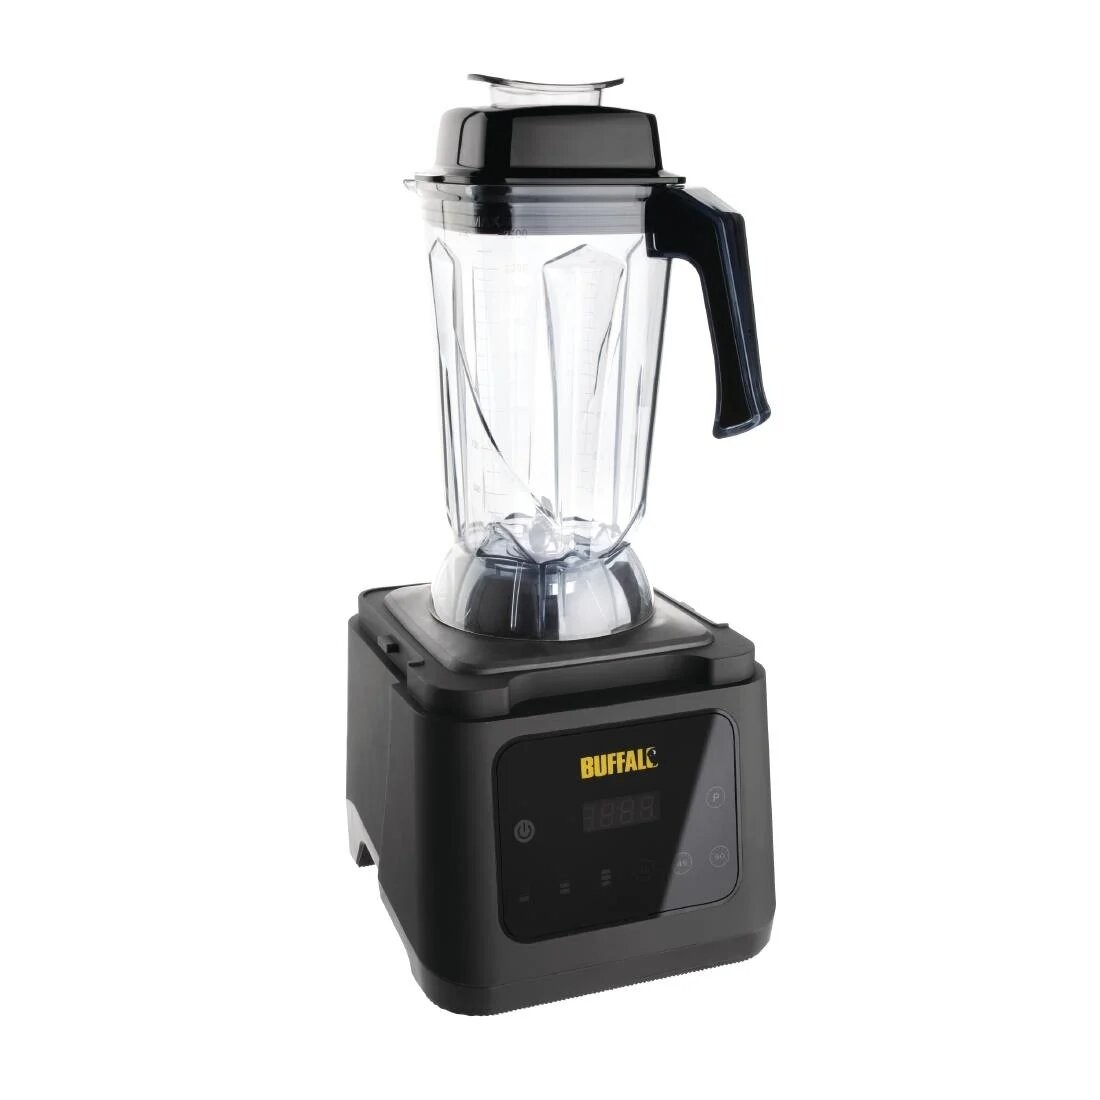 Buffalo CY140 2.5 Litre Bar Blender with Digital controls